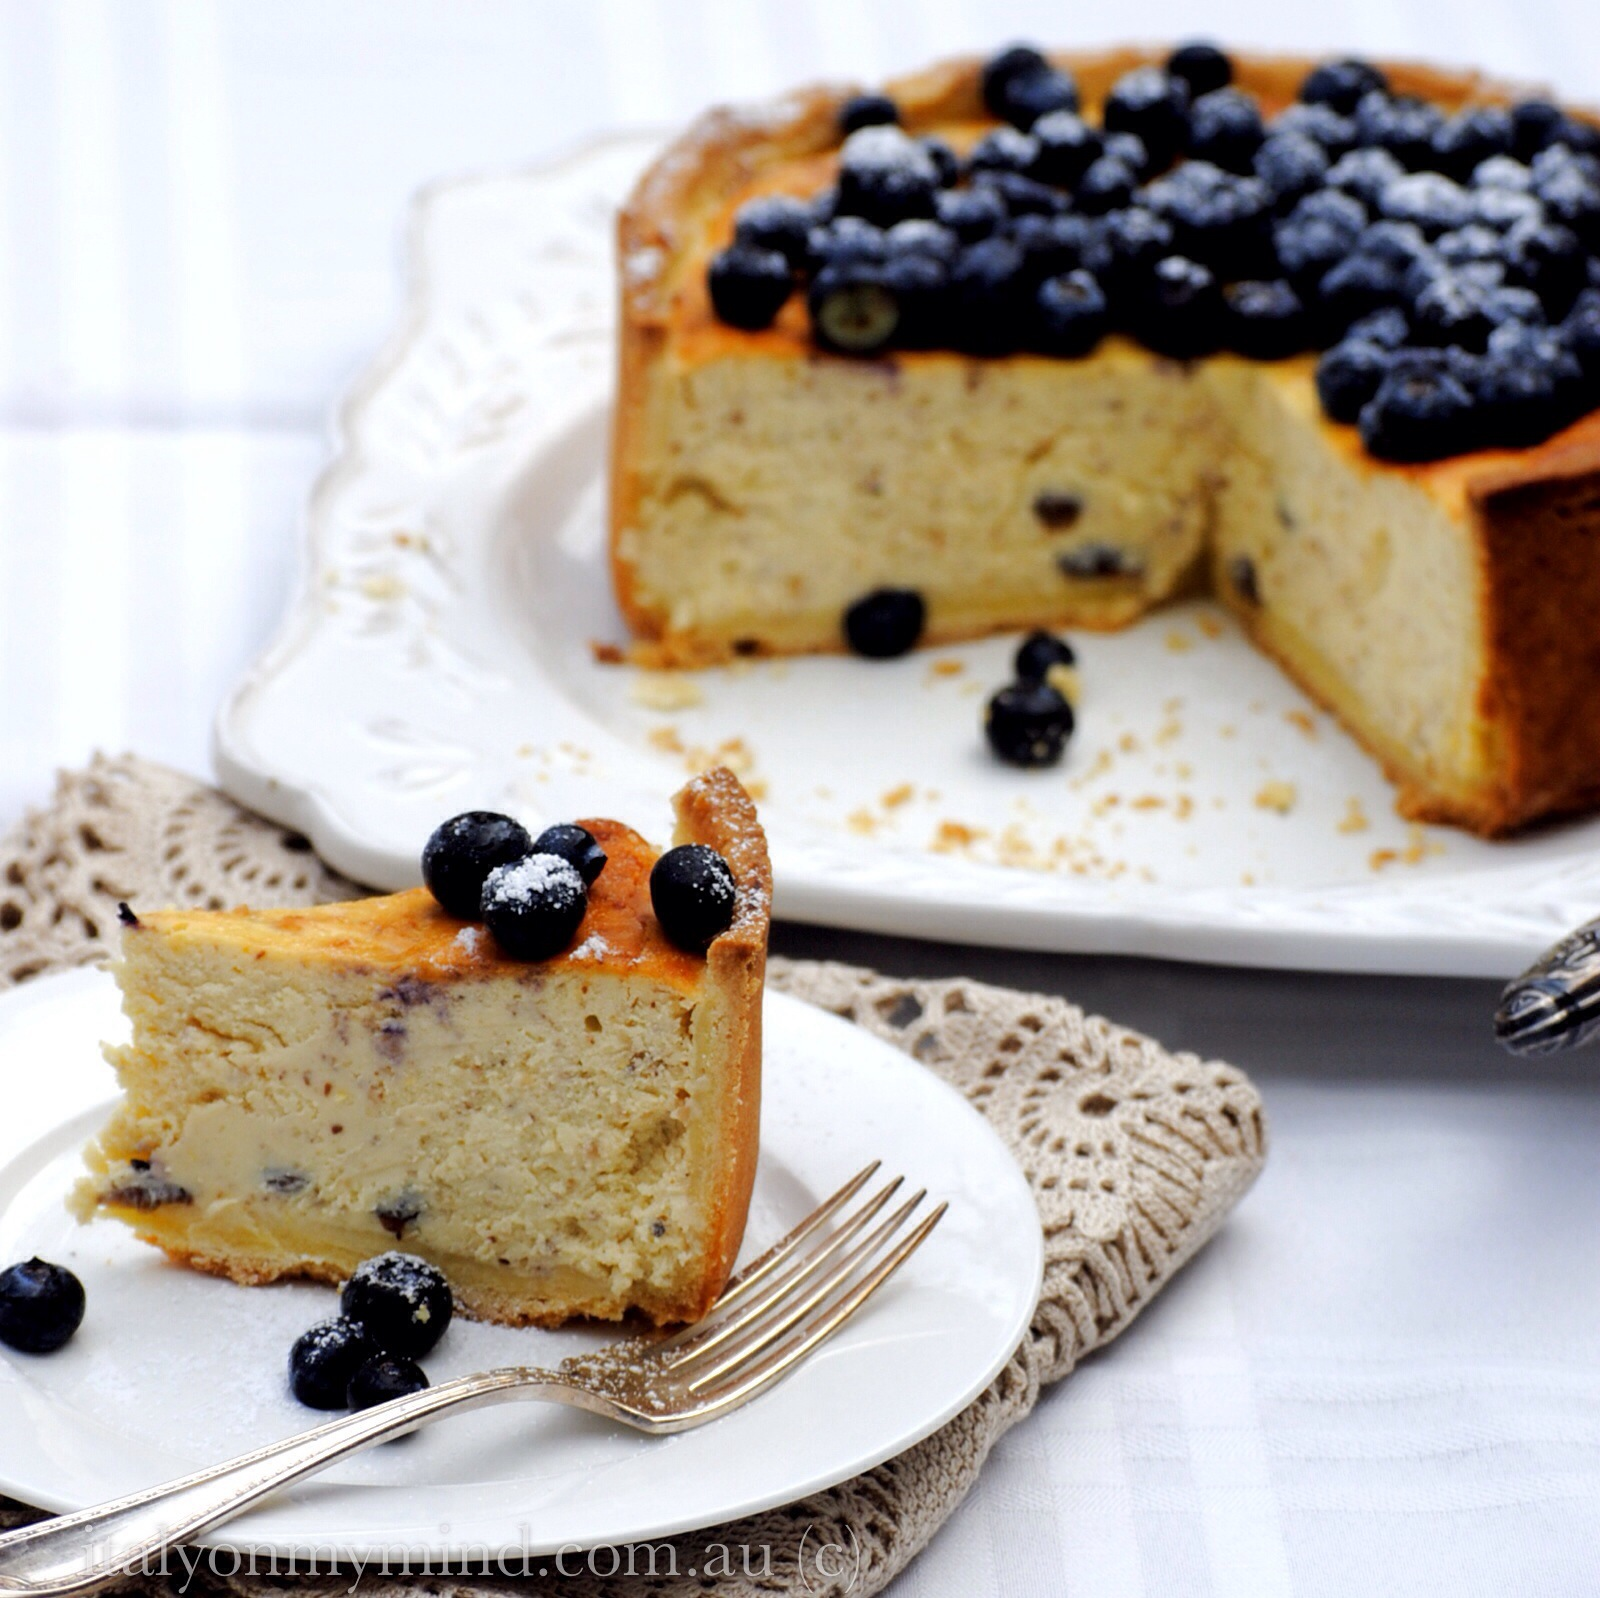 Italian baked ricotta cheesecake with blueberries